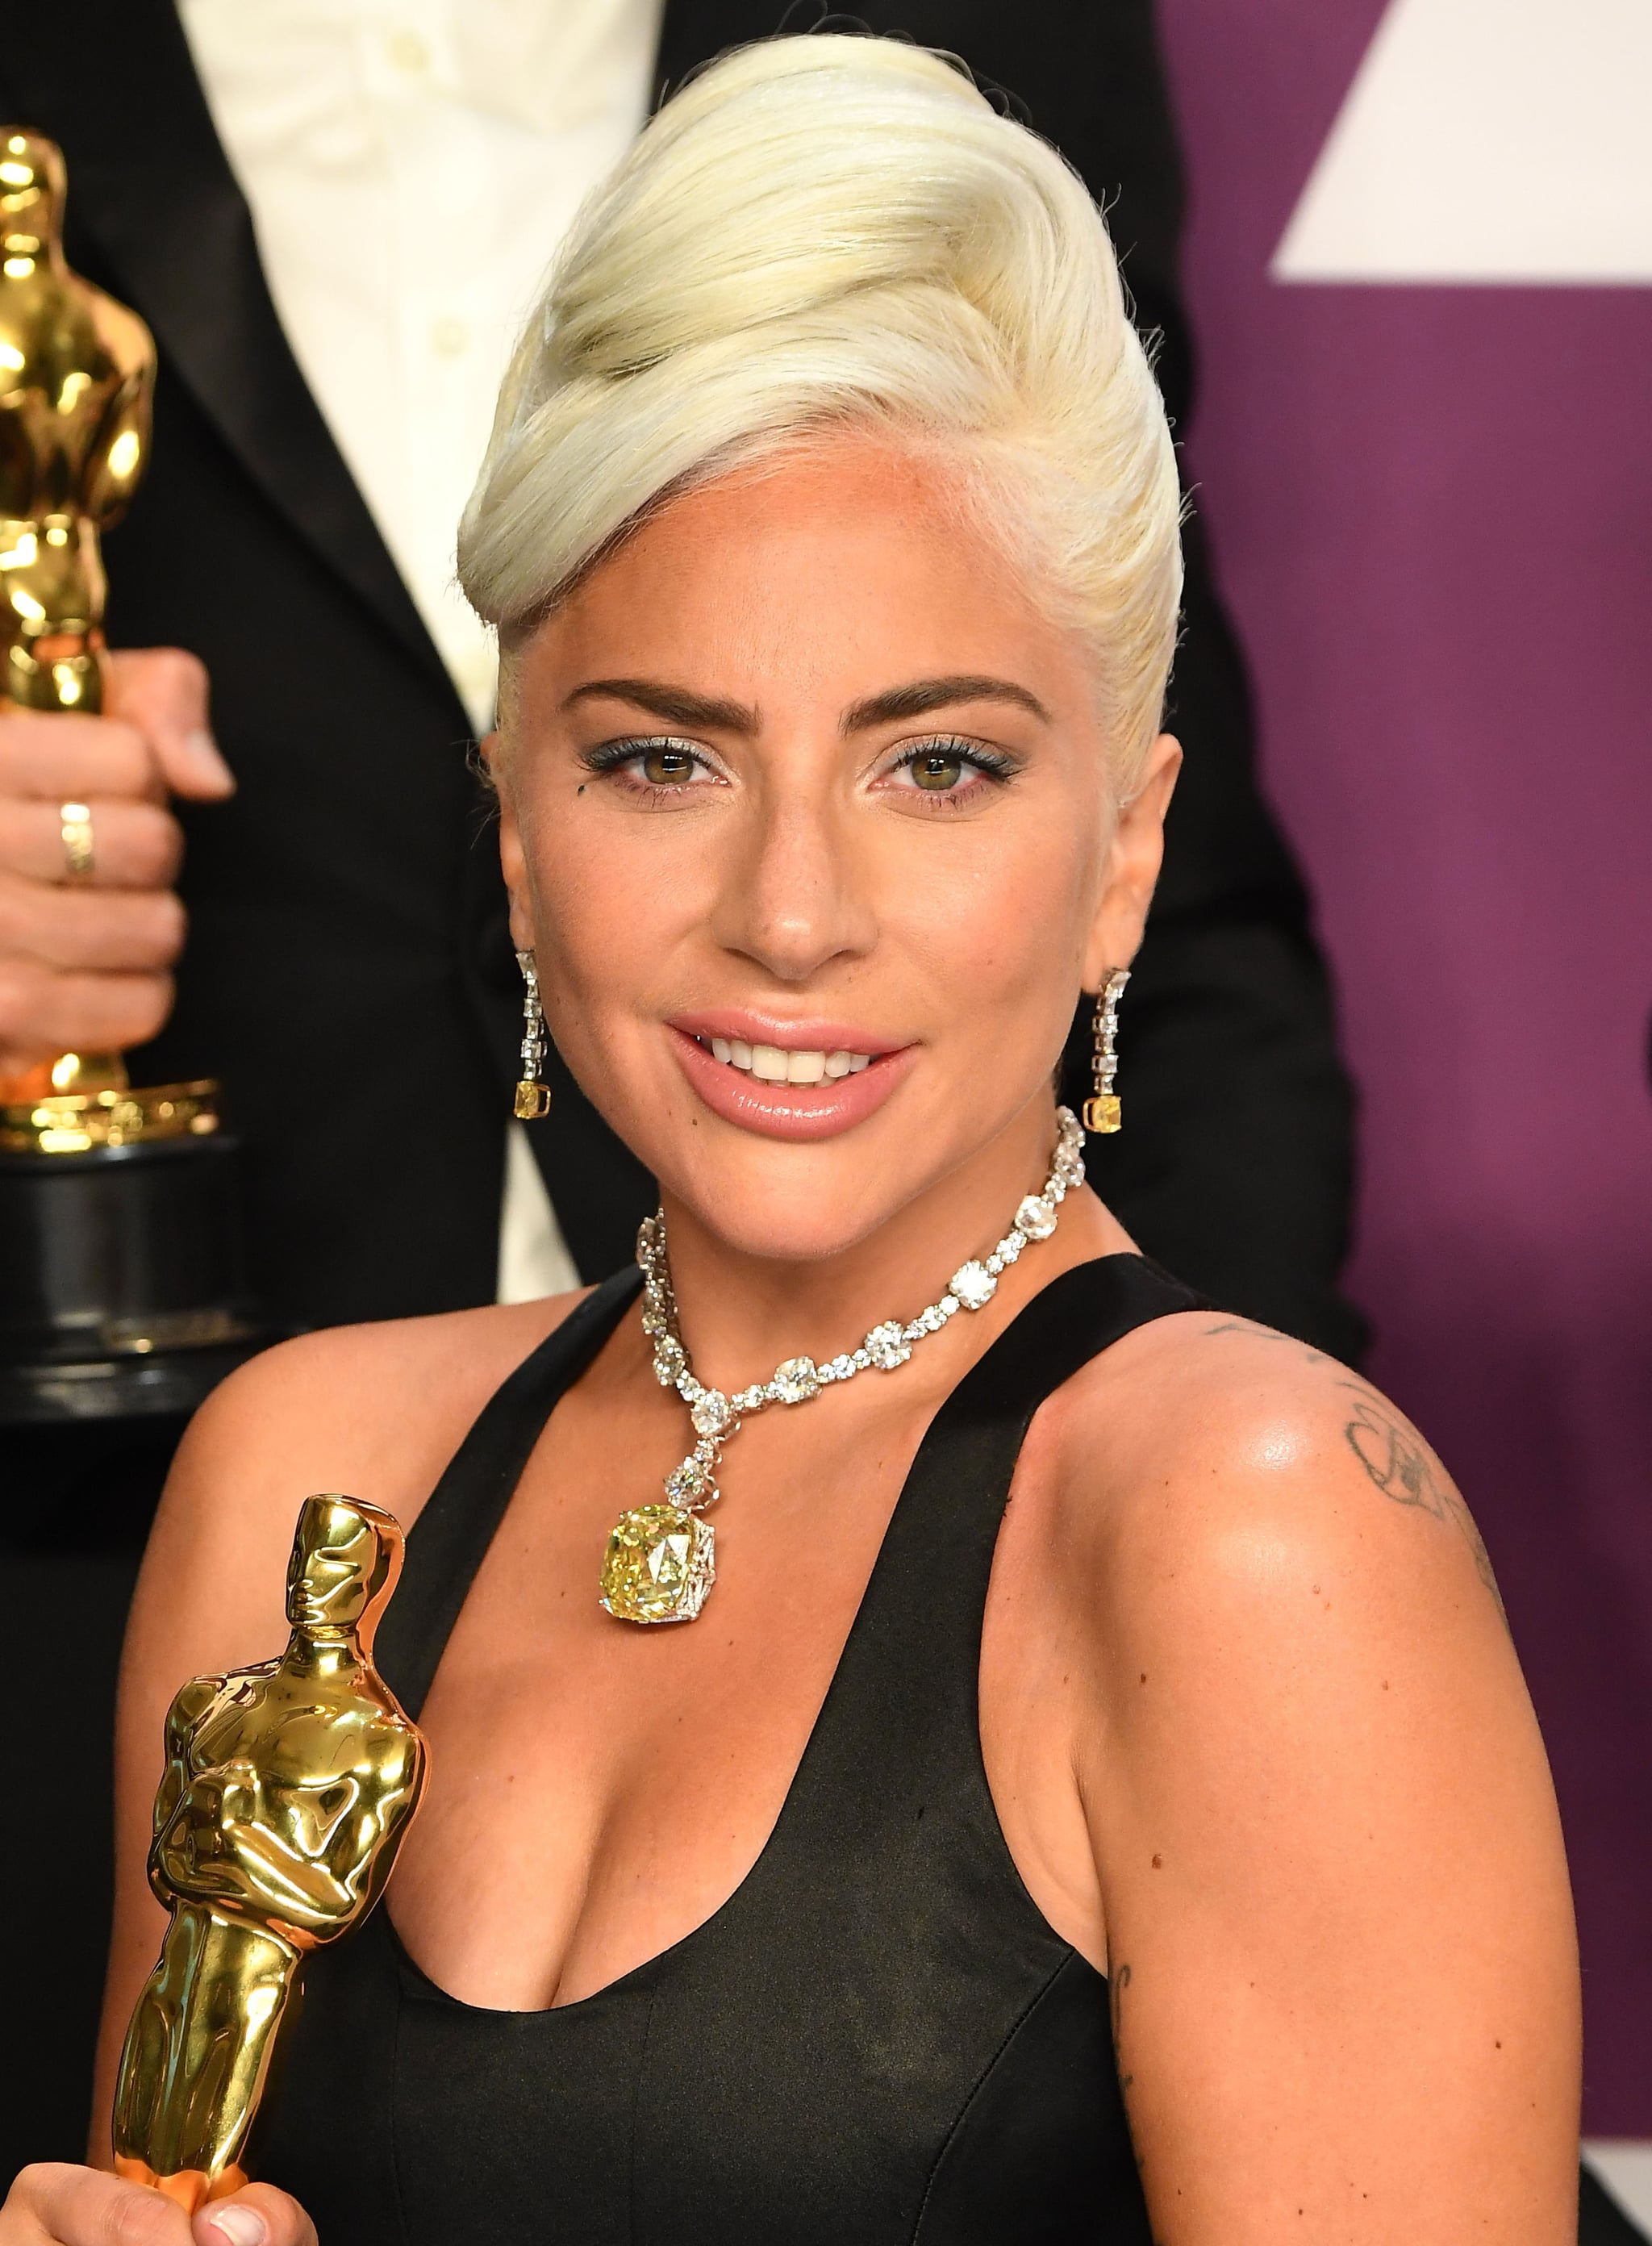 HOLLYWOOD, CALIFORNIA - FEBRUARY 24: Lady Gaga poses at the 91st Annual Academy Awards at Hollywood and Highland on February 24, 2019 in Hollywood, California. (Photo by Steve Granitz/WireImage )